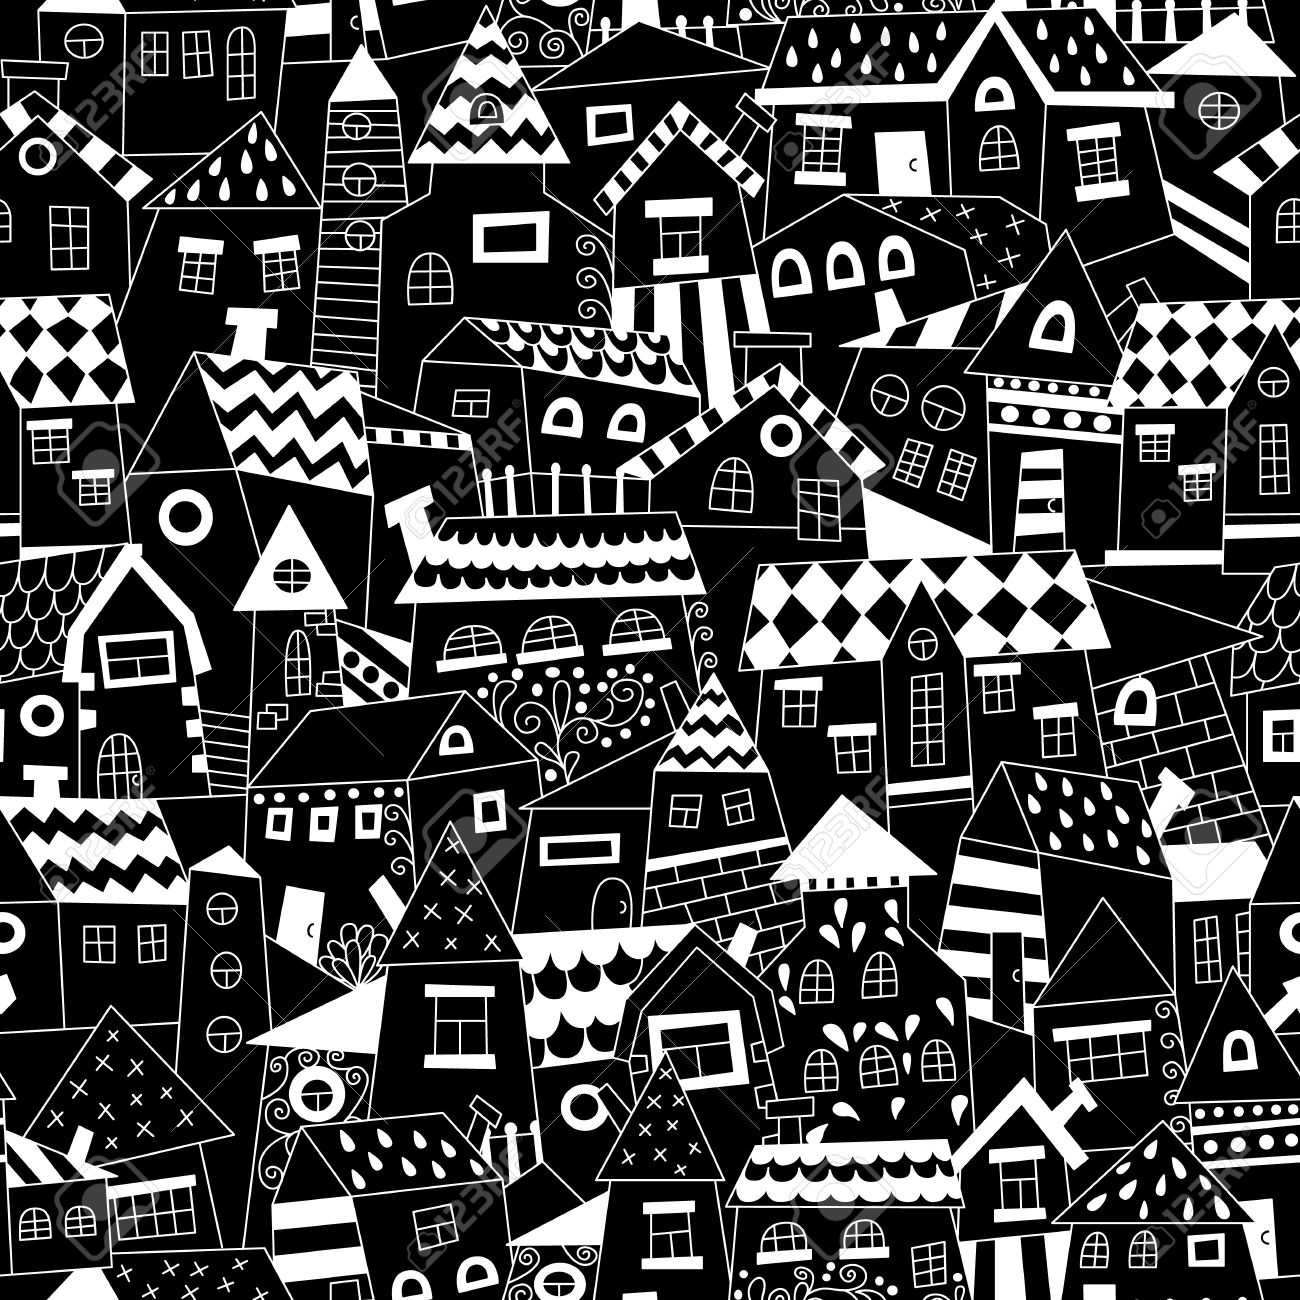 Doodle Hand Drawn Town Seamless Pattern Black And White Abstract Wallpaper Vector Illustration For